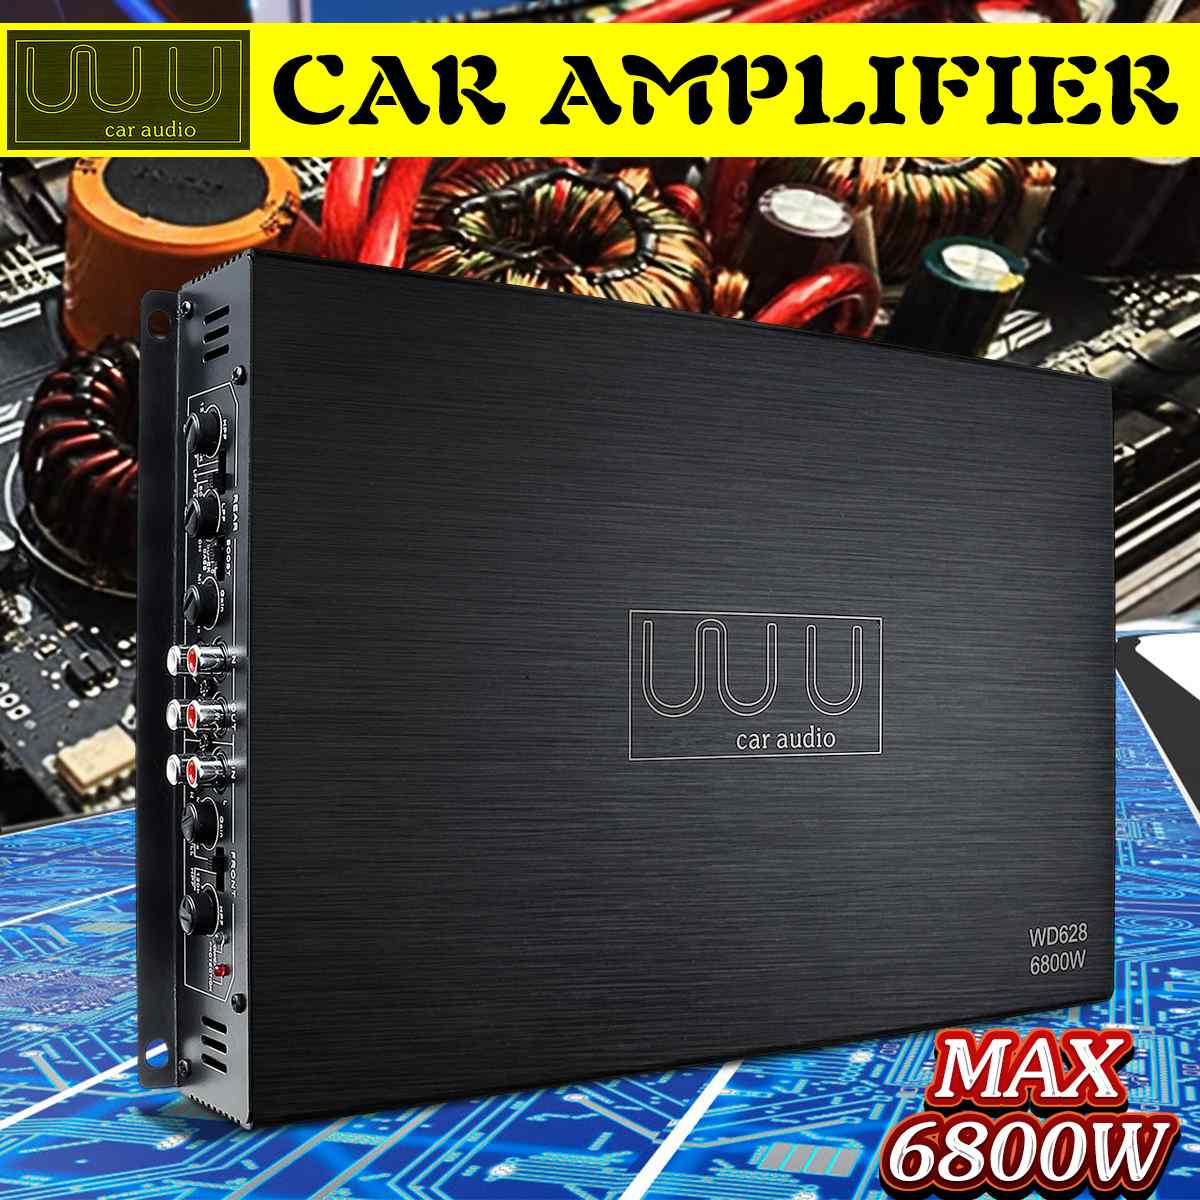 DC 12V 6800W 4Channel Car Amplifier Audio Stereo Bass Speaker Car Audio Amplifiers Subwoofer Car Audio Amplifiers Amplificador